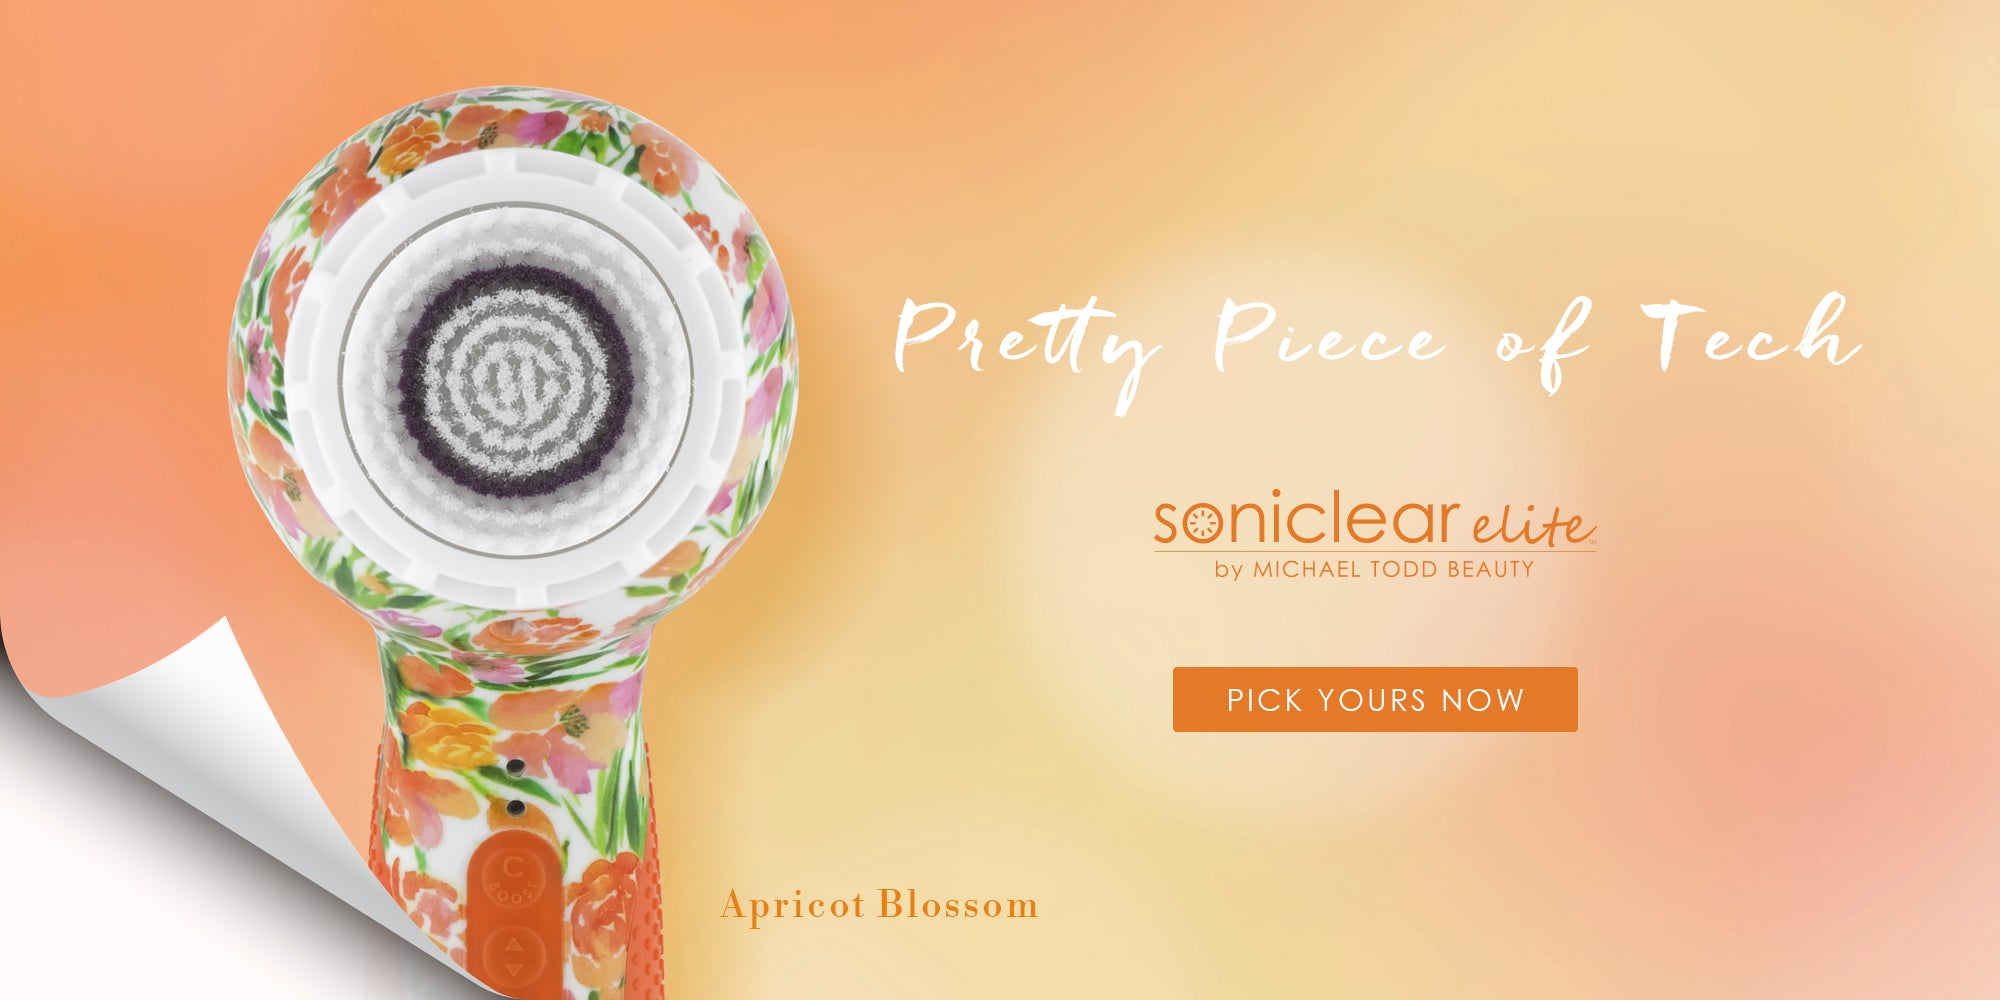 Shop Now - Sonicblend